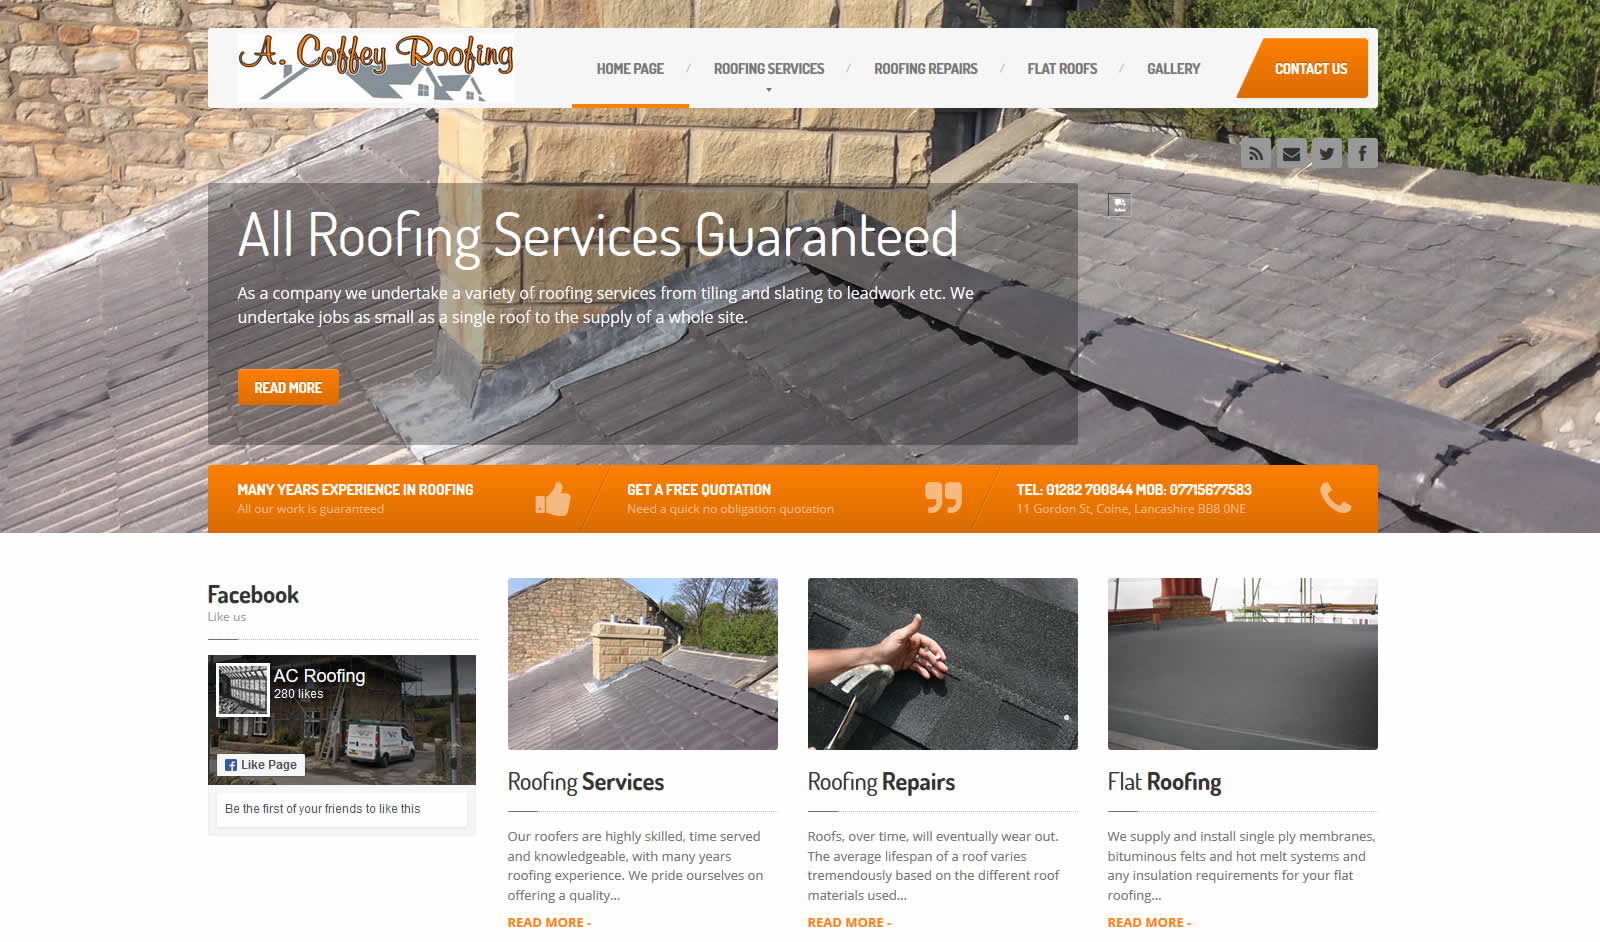 A Coffey Roofing